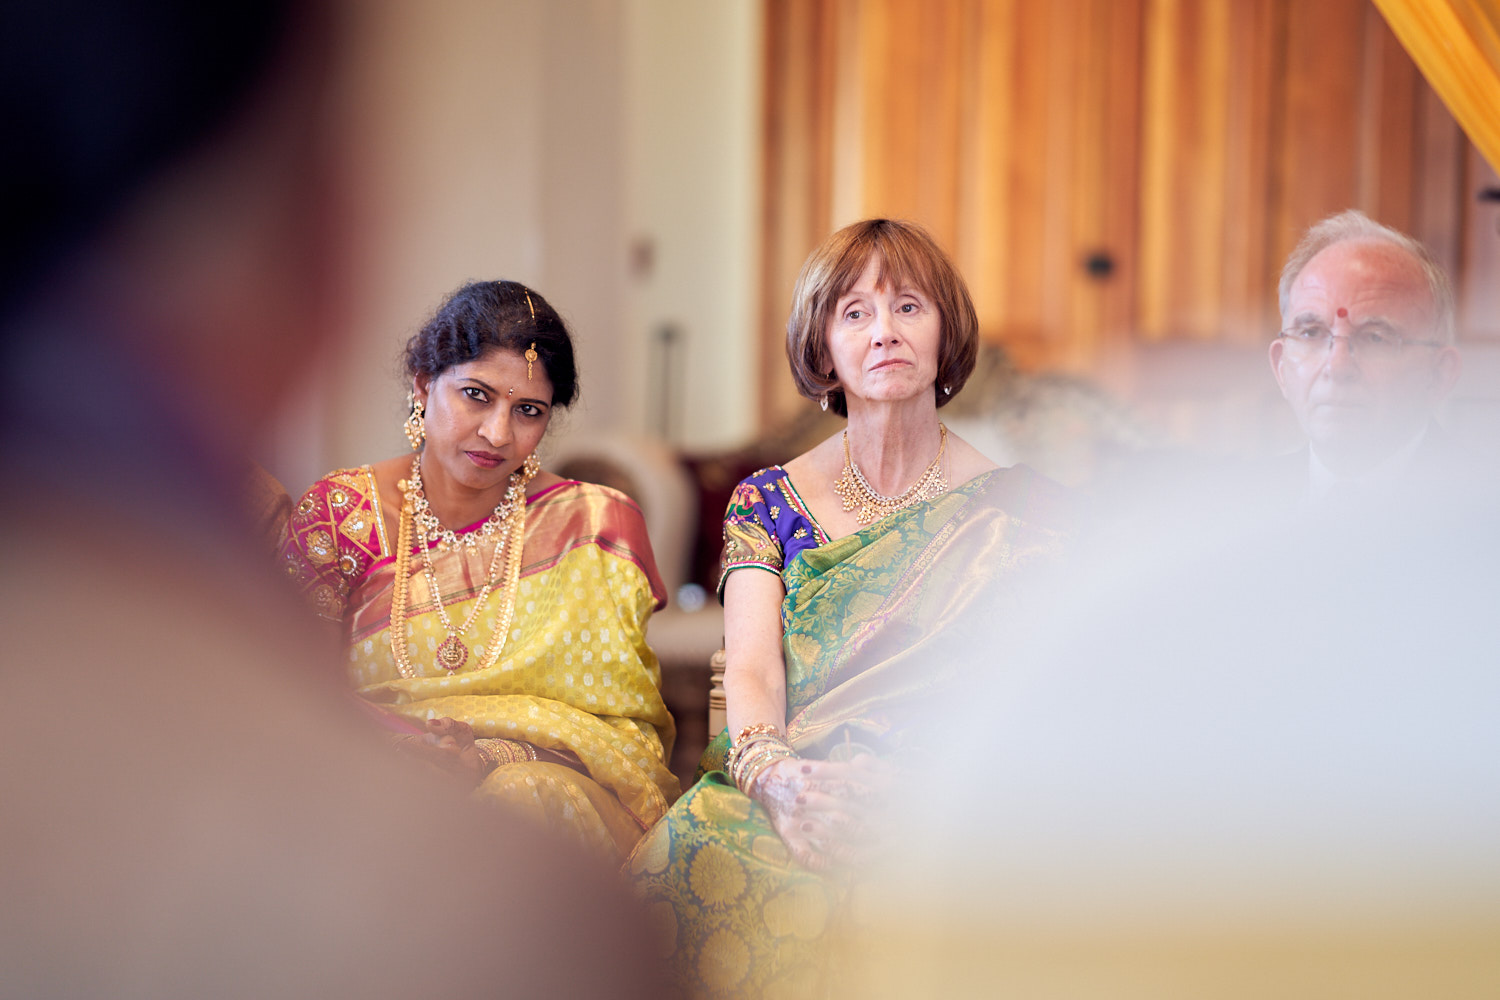 south-indian-wedding-ceremony-photography-by-afewgoodclicks-net-in-saratoga 82.jpg